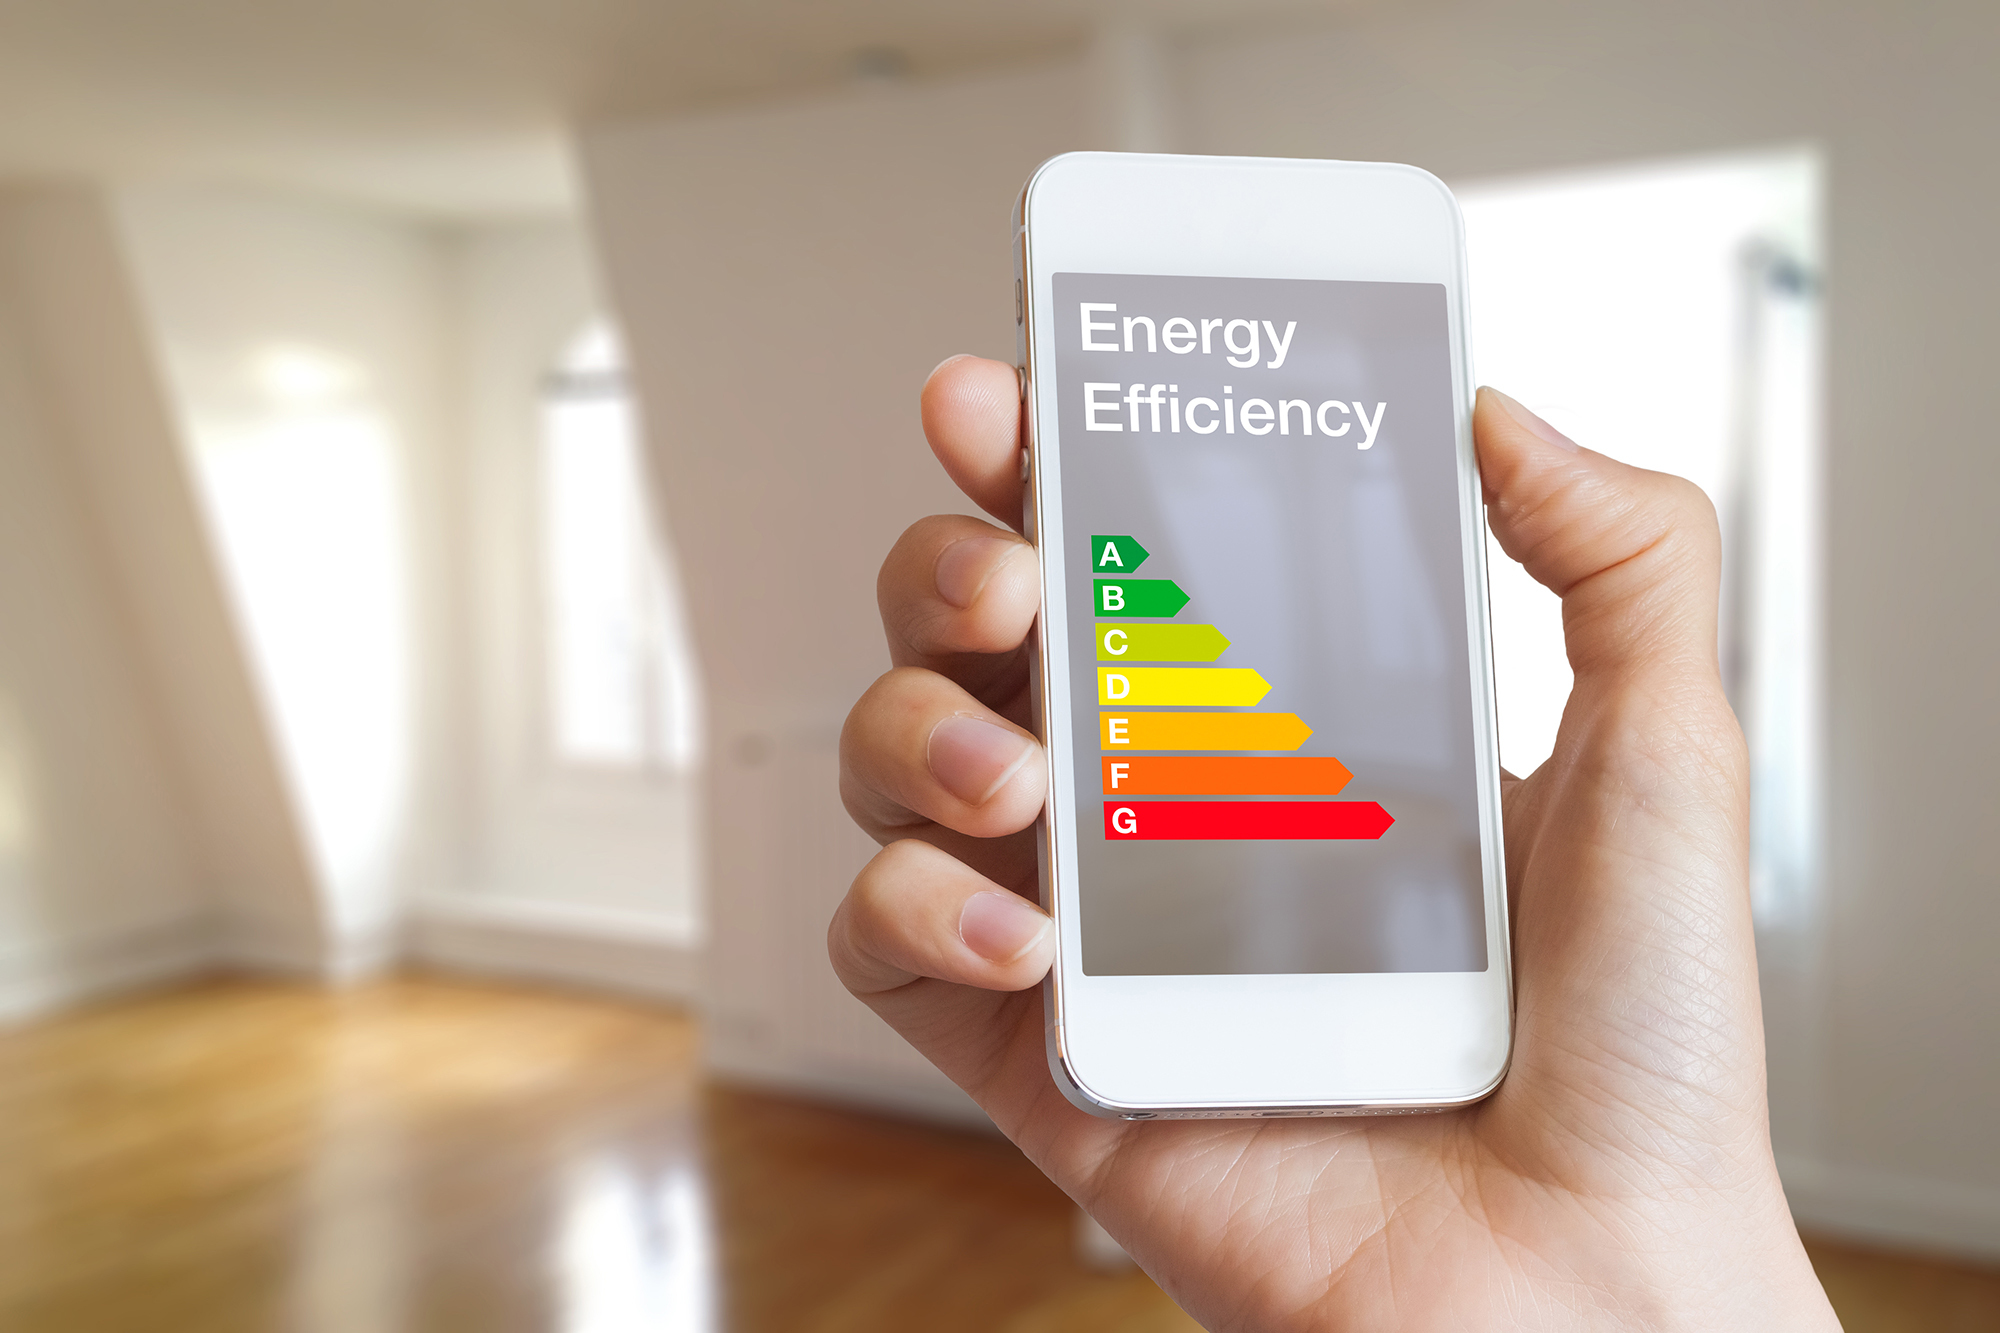 Energy efficiency rating on smartphone app, home interior in bac